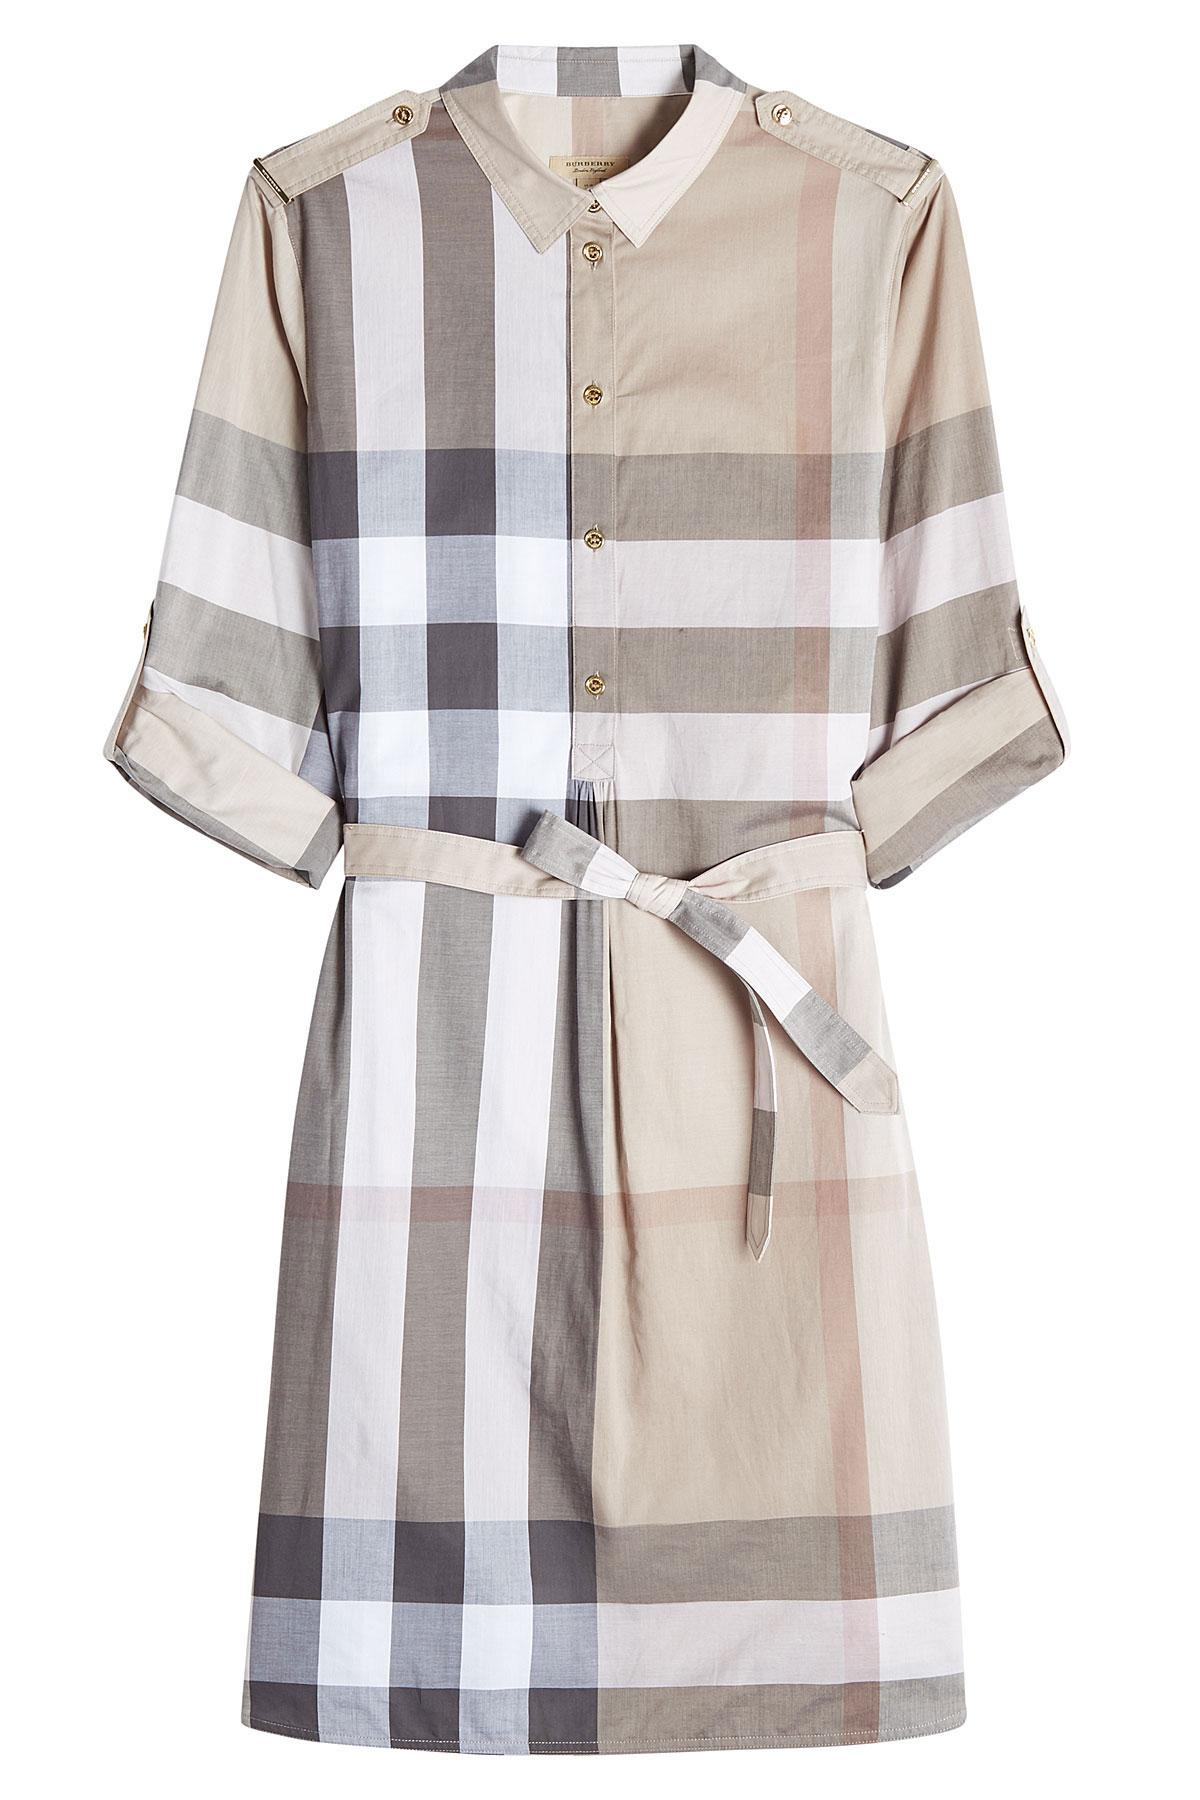 Burberry Printed Cotton Shirt Dress Multicolor In